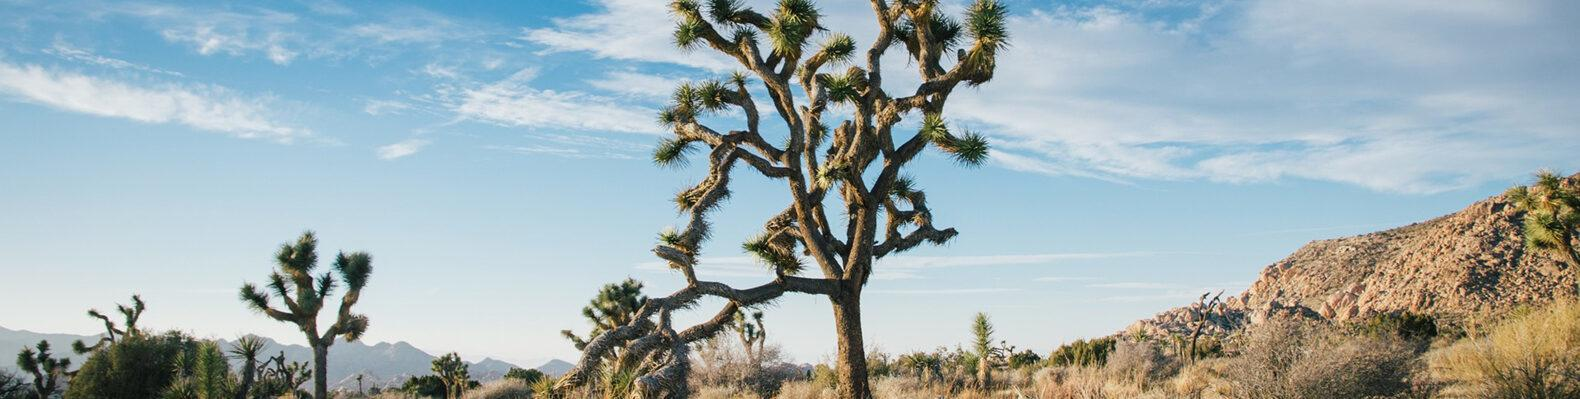 joshua tree in a desert